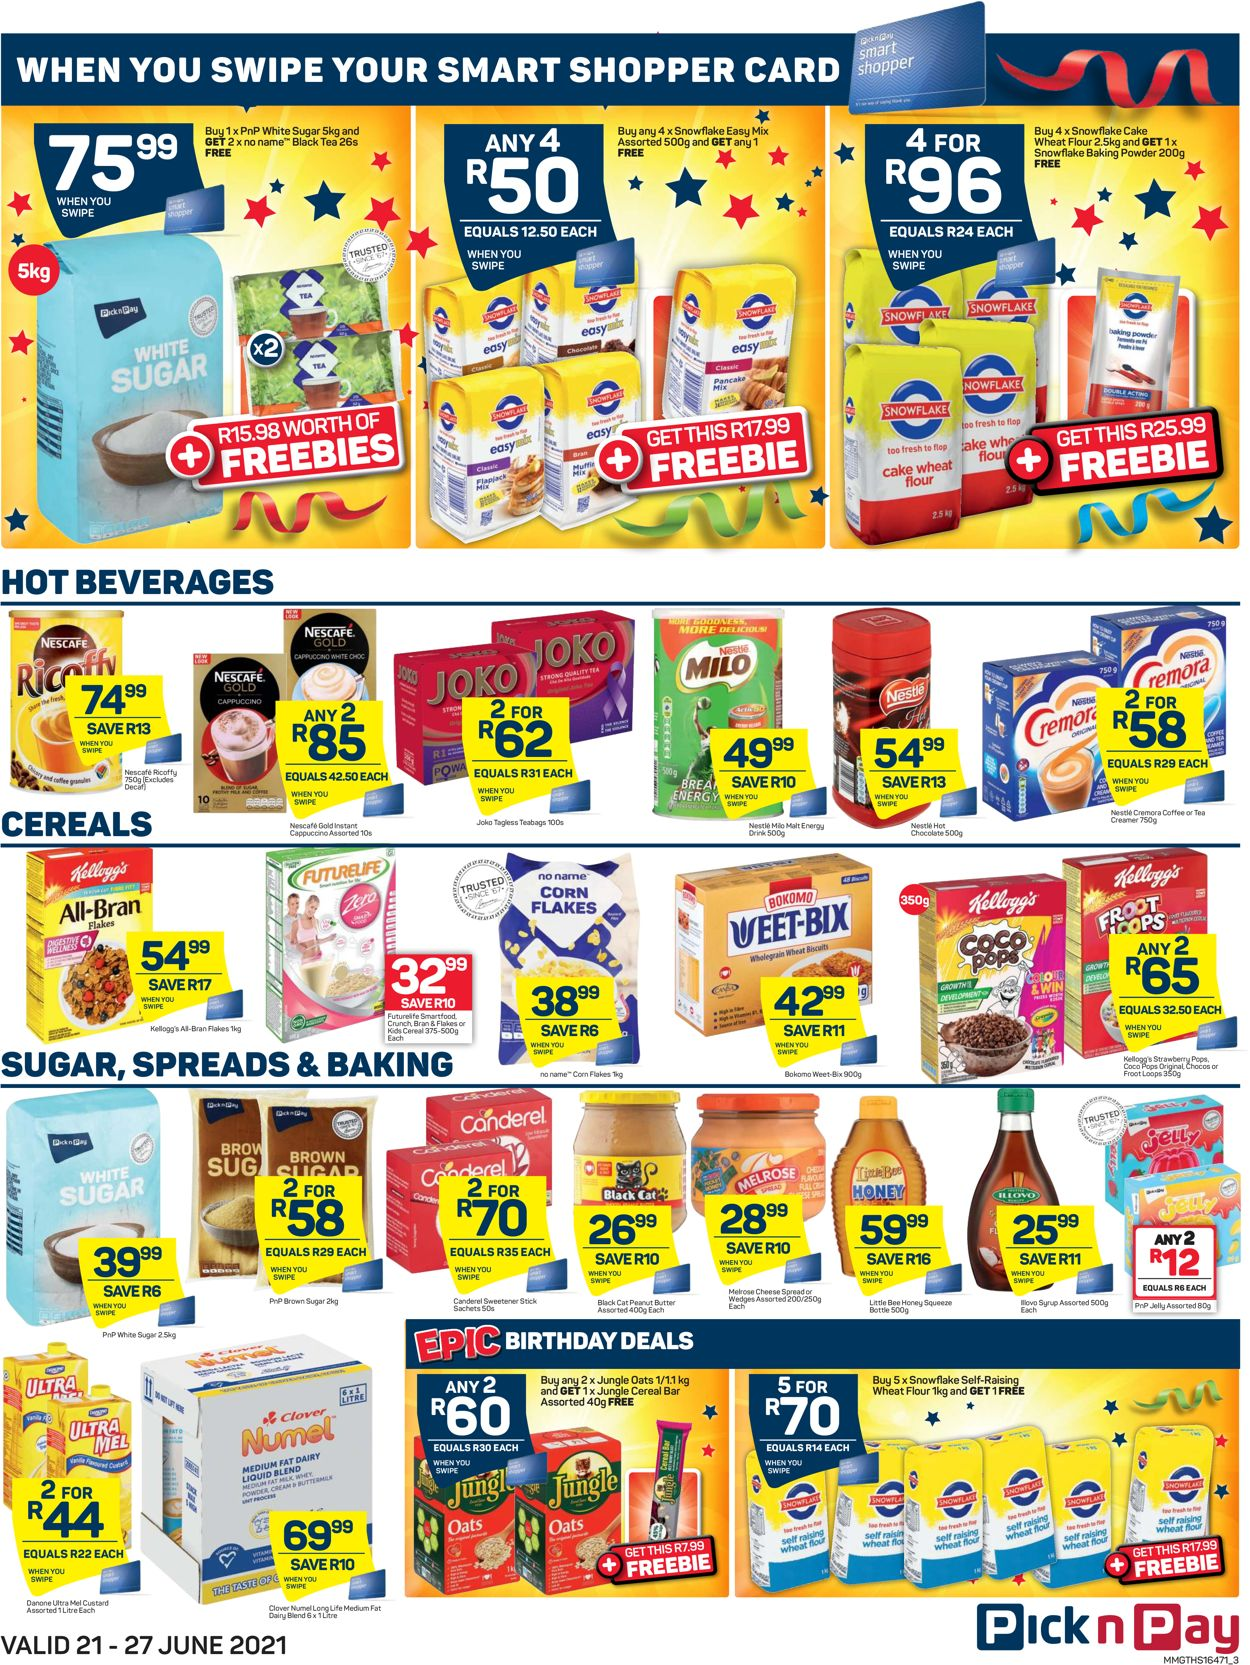 Pick n Pay Catalogue - 2021/06/21-2021/06/27 (Page 3)